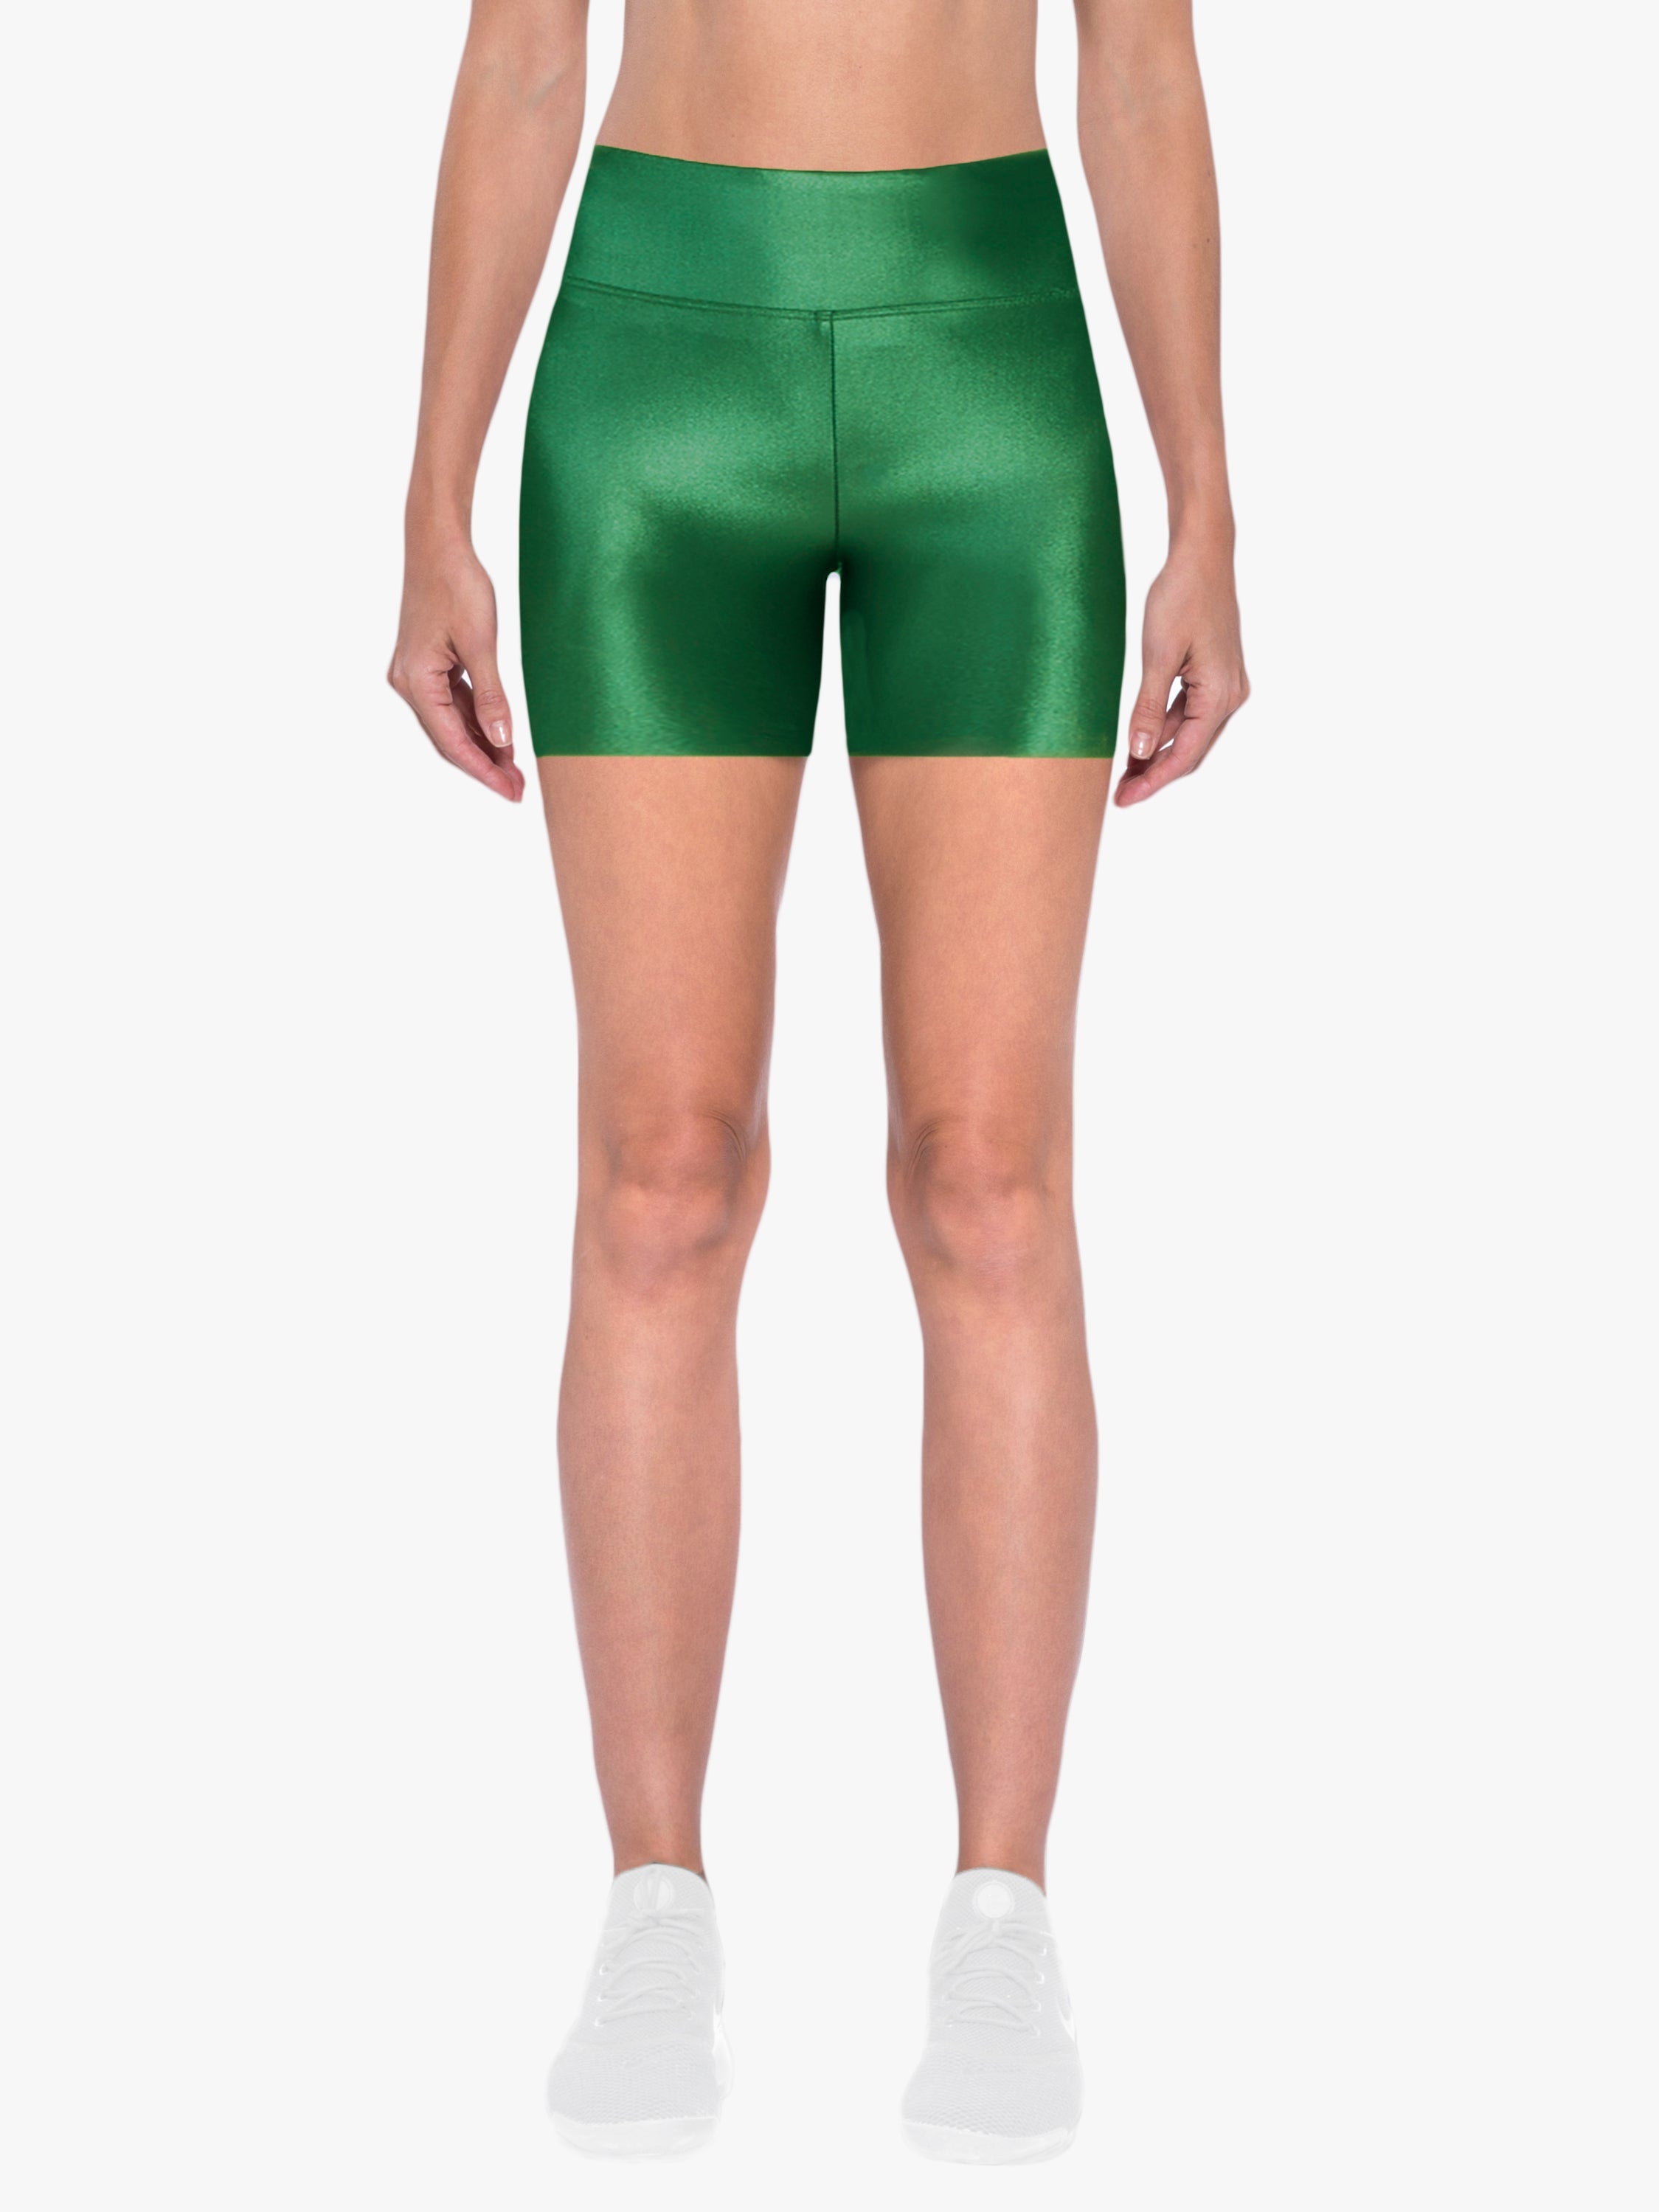 Slalom High Rise Infinity Shorts - Dark Green